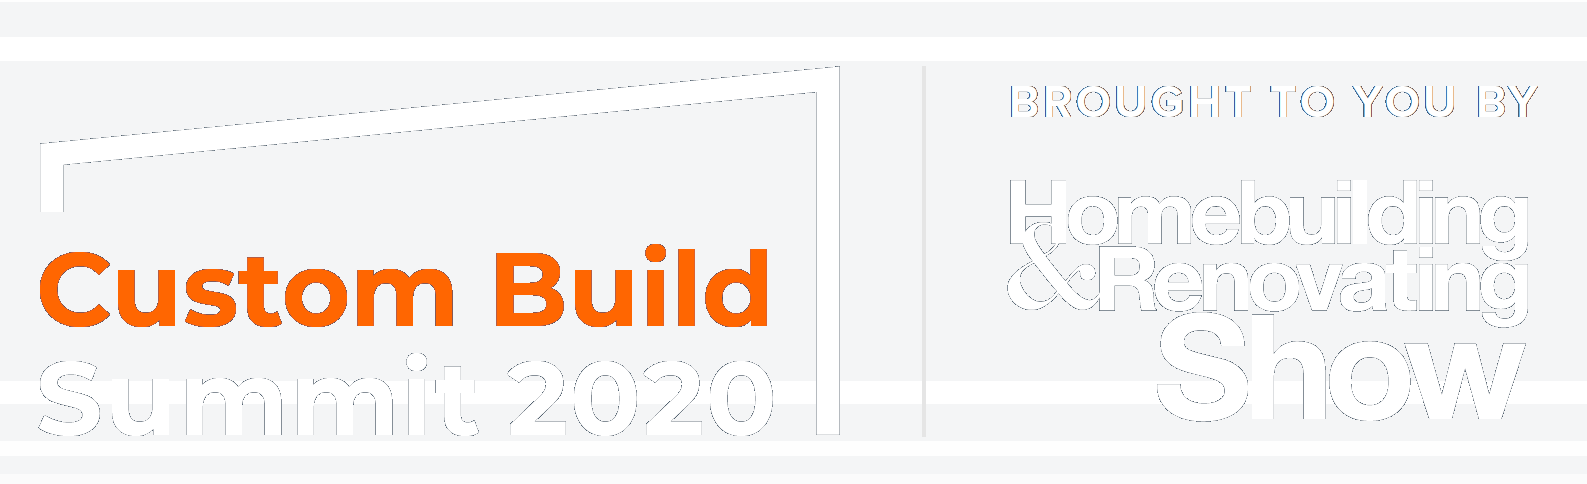 Custom Build Summit 2020